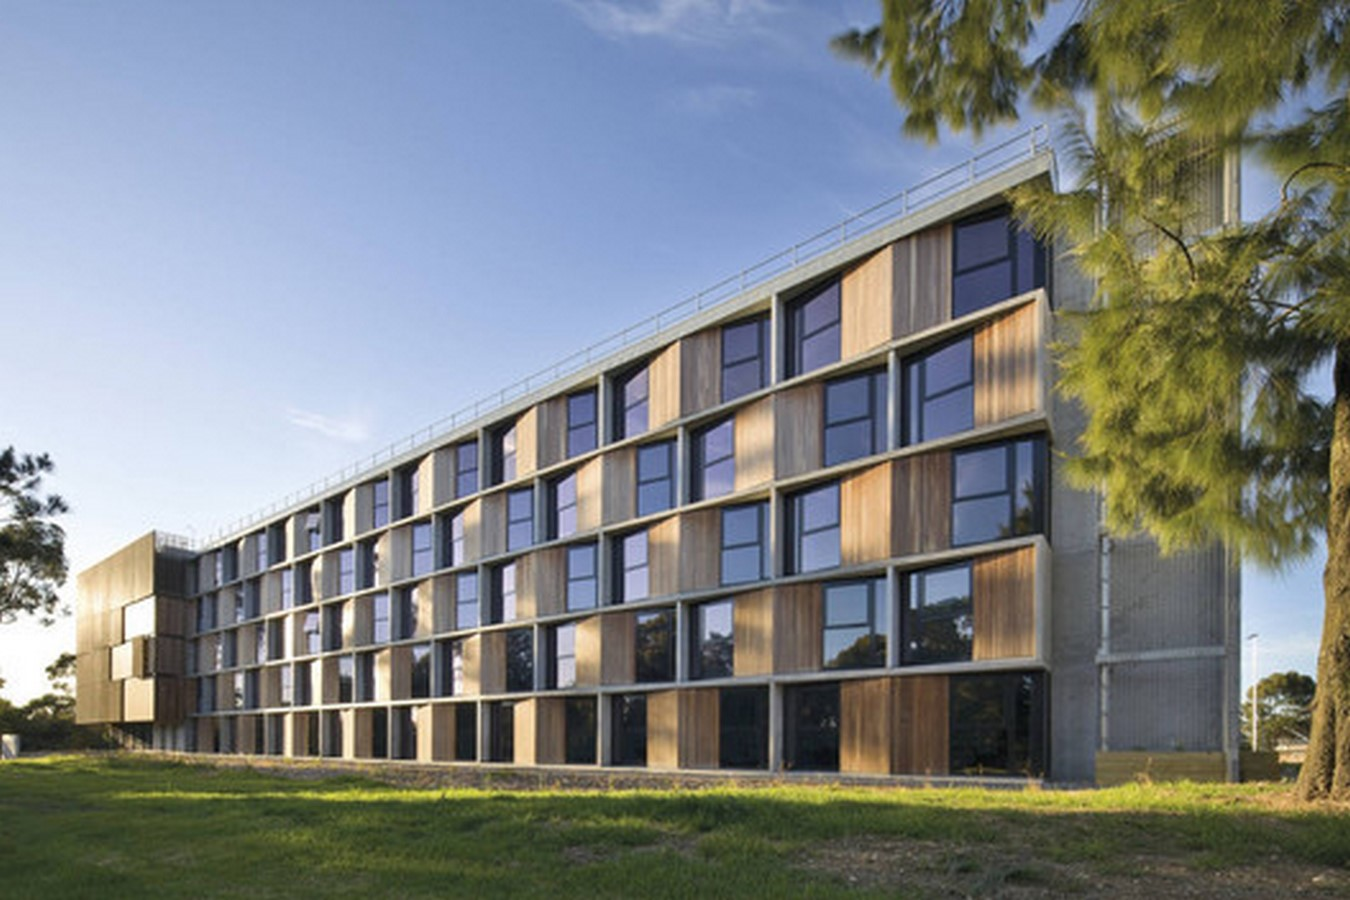 20 Examples of modern student housing - Sheet30